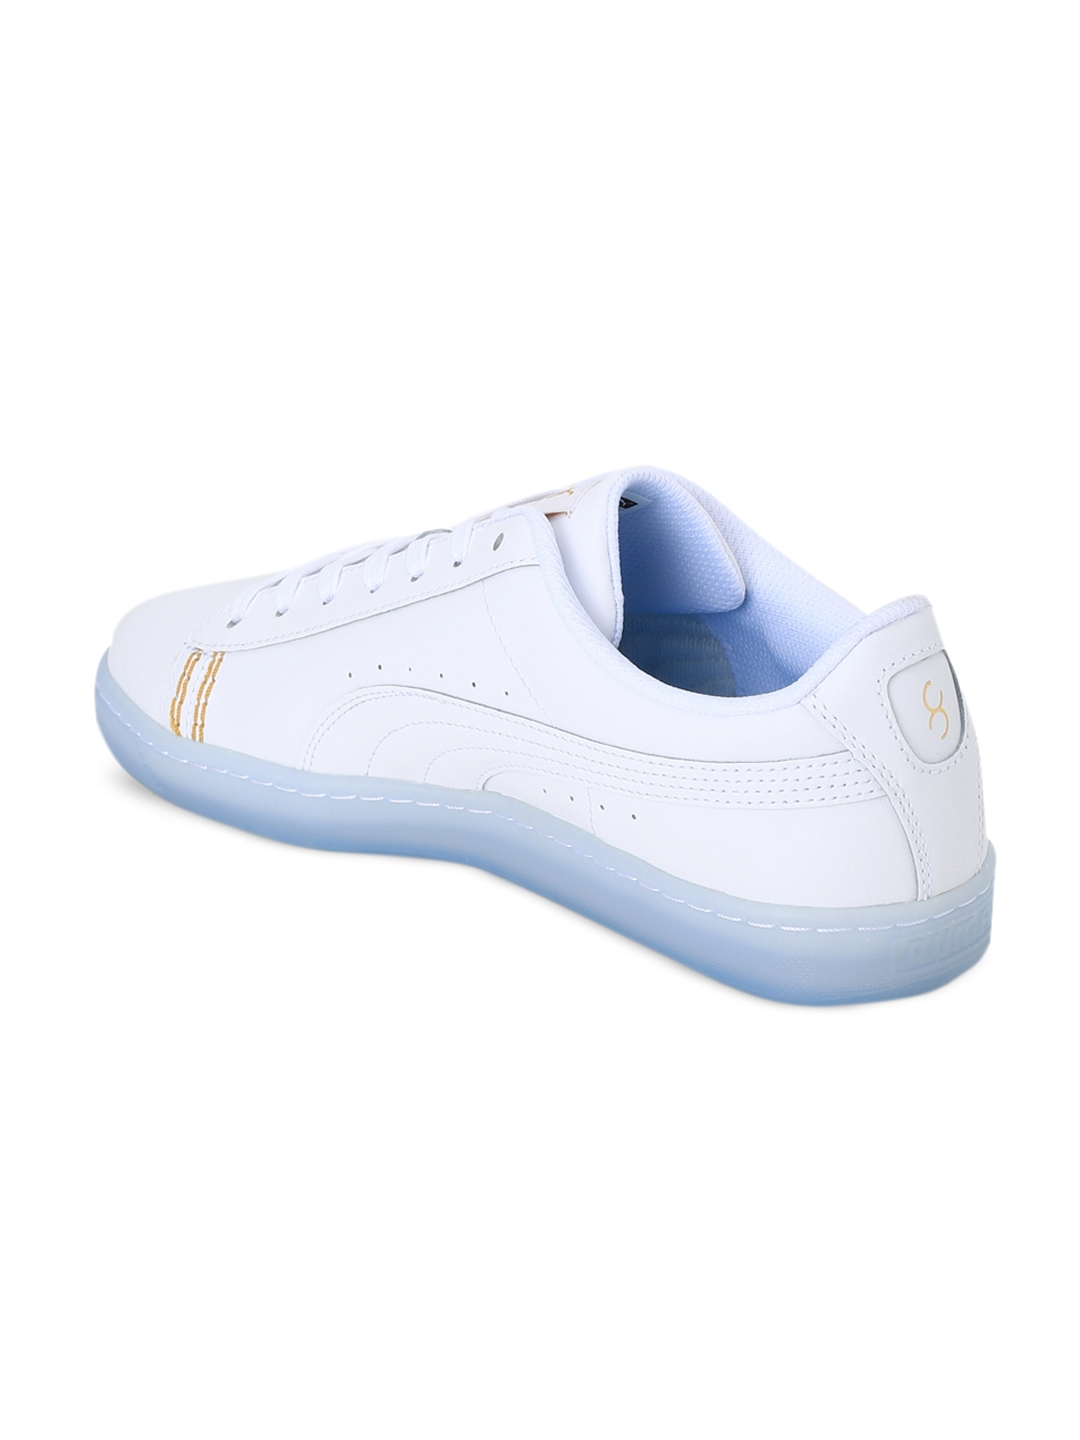 Buy Puma Unisex White One8 Basket Classic Sneakers - Casual Shoes ... e6db102f5